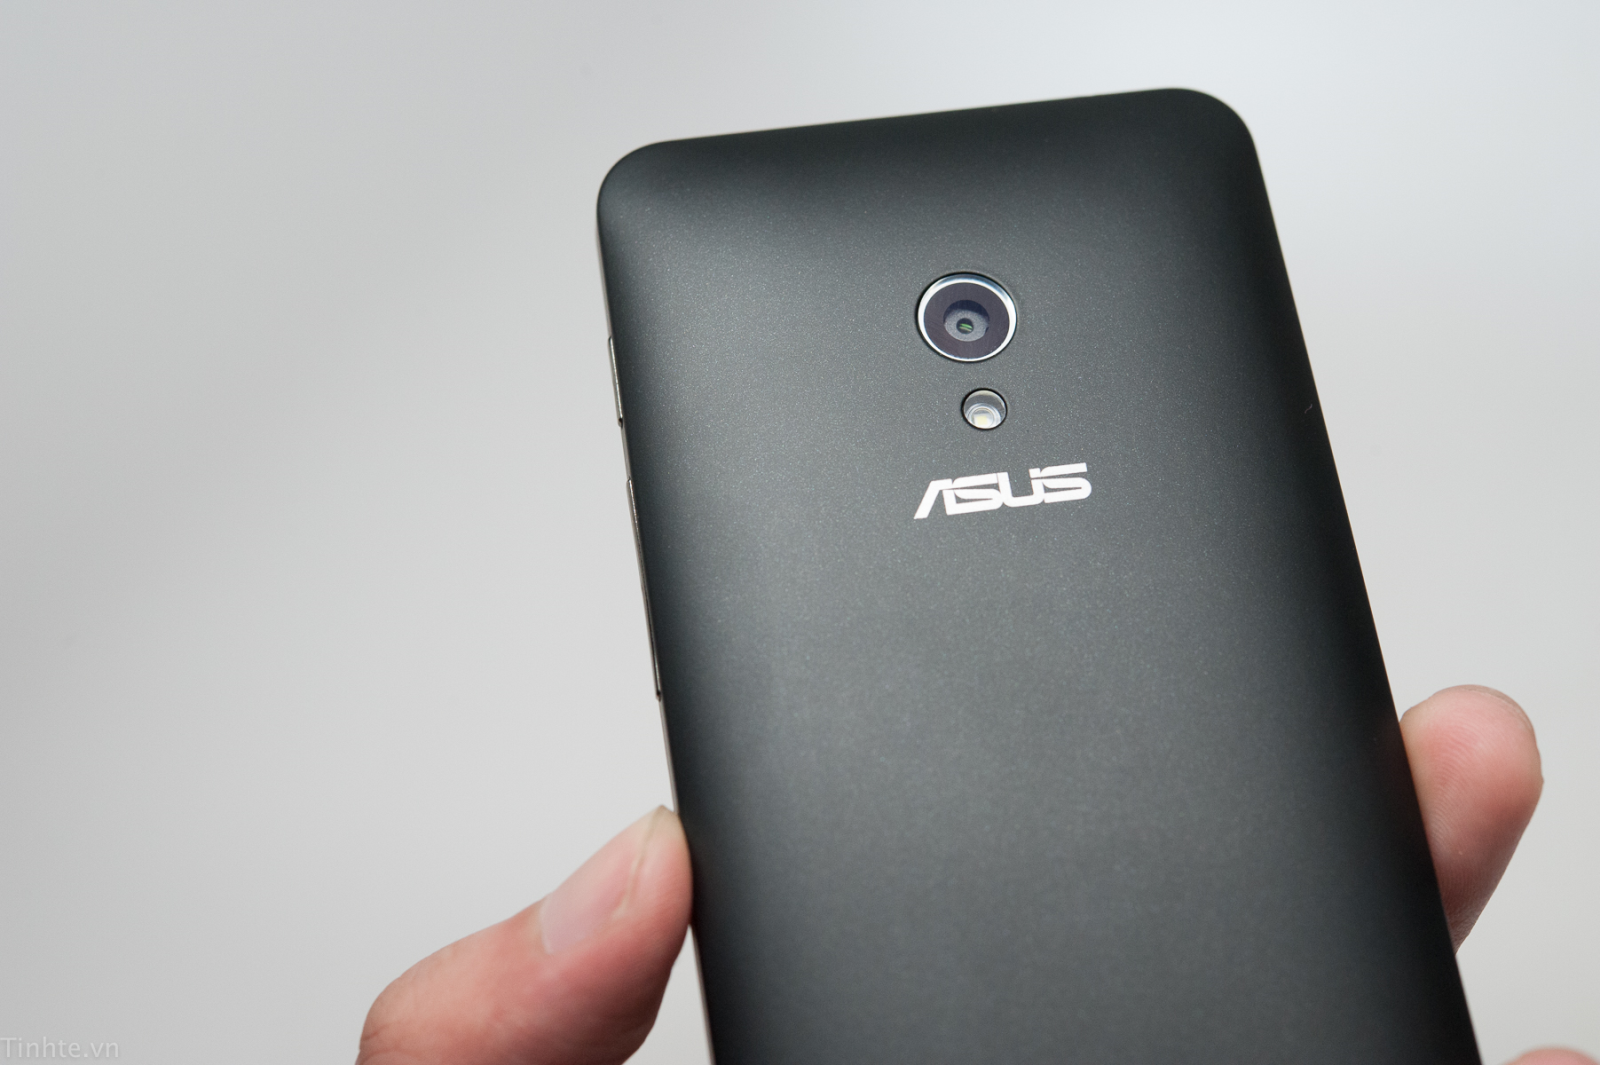 ASUS ZENFONE A450 DRIVERS FOR WINDOWS XP